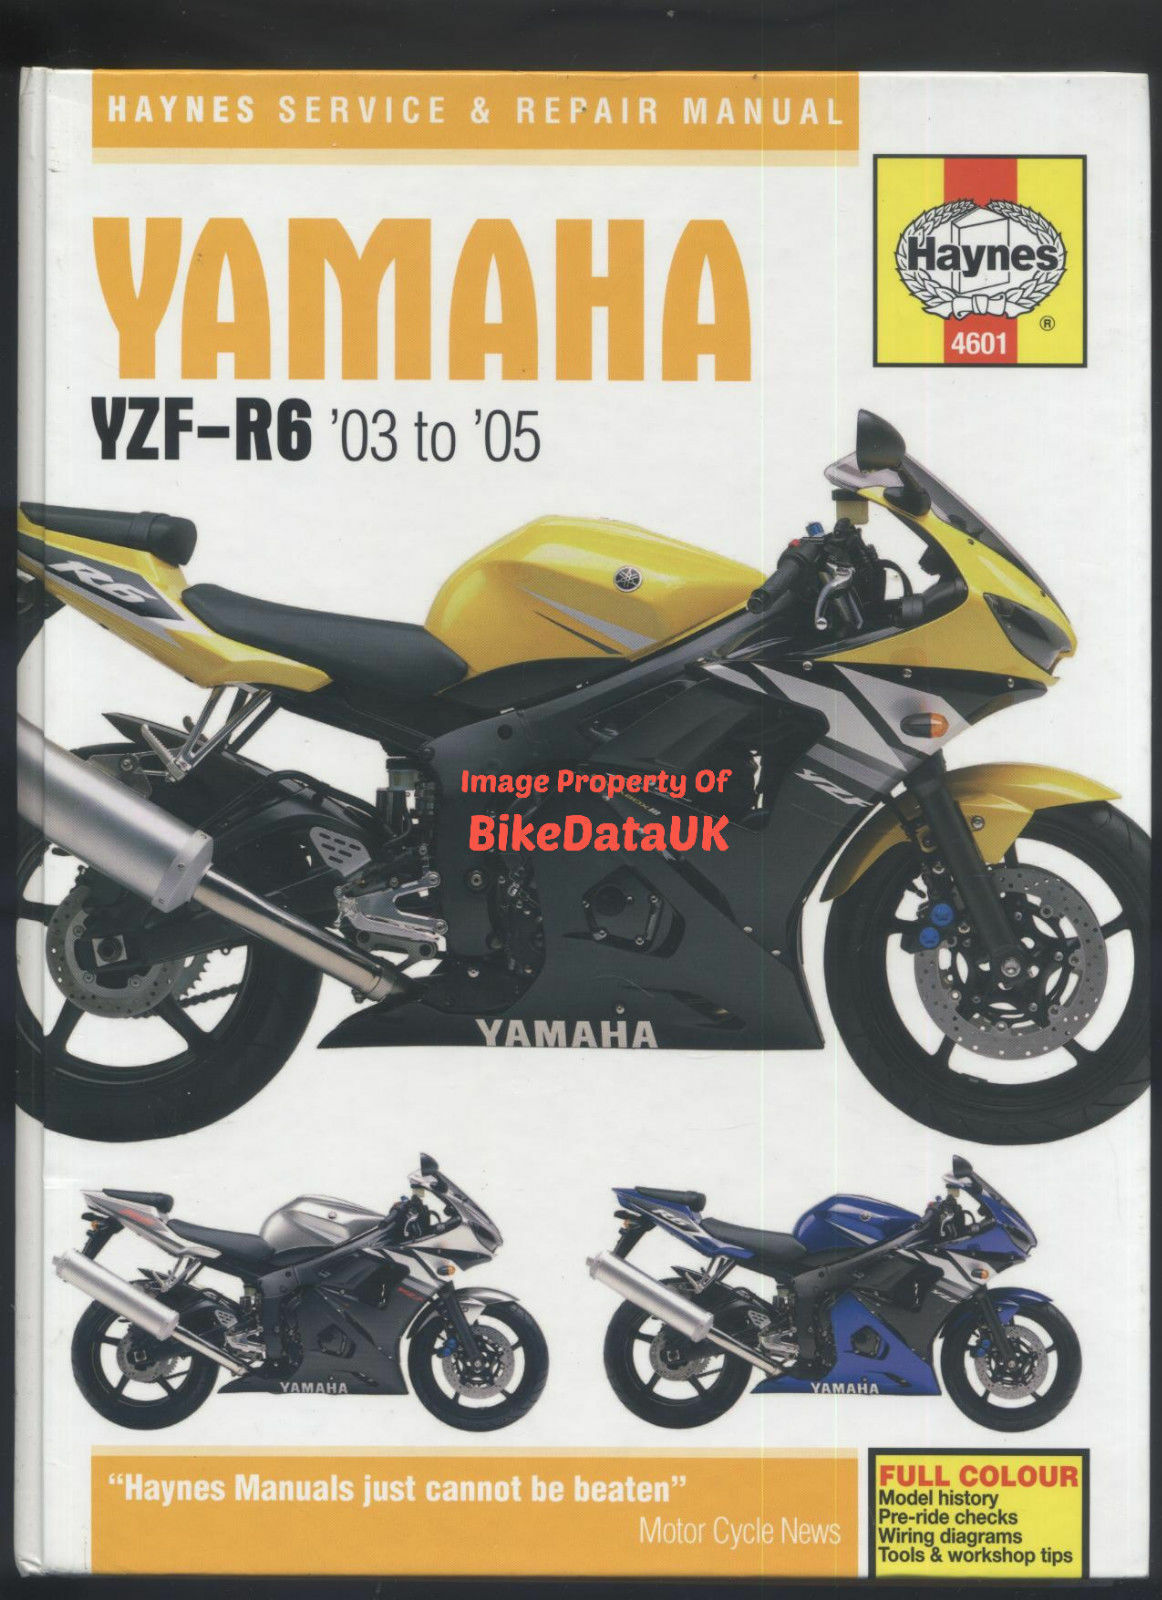 hight resolution of yamaha r6 03 05 5sl haynes maintenance workshop manual 4601 ebay yamaha rhino wiring diagram 03 yamaha r6 wiring diagram